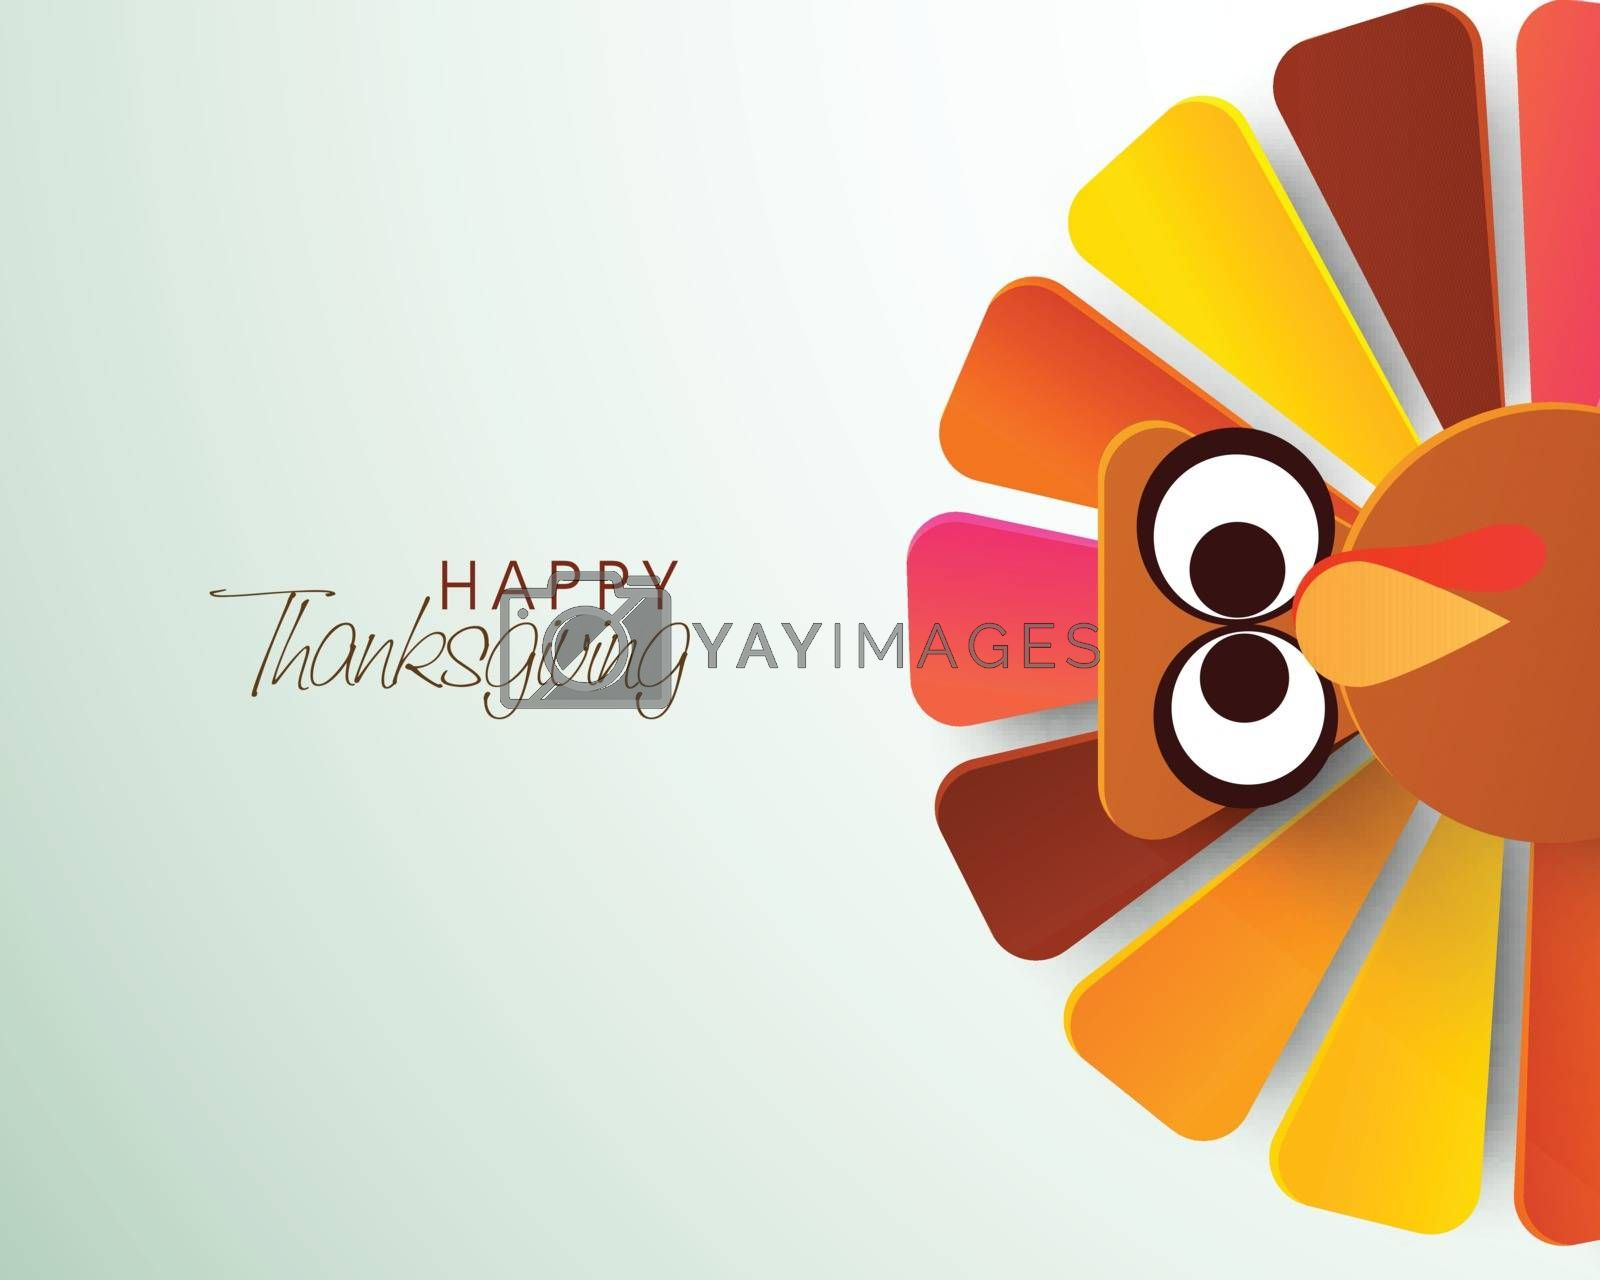 Colorful Turkey Bird for Thanksgiving Day. by aispl